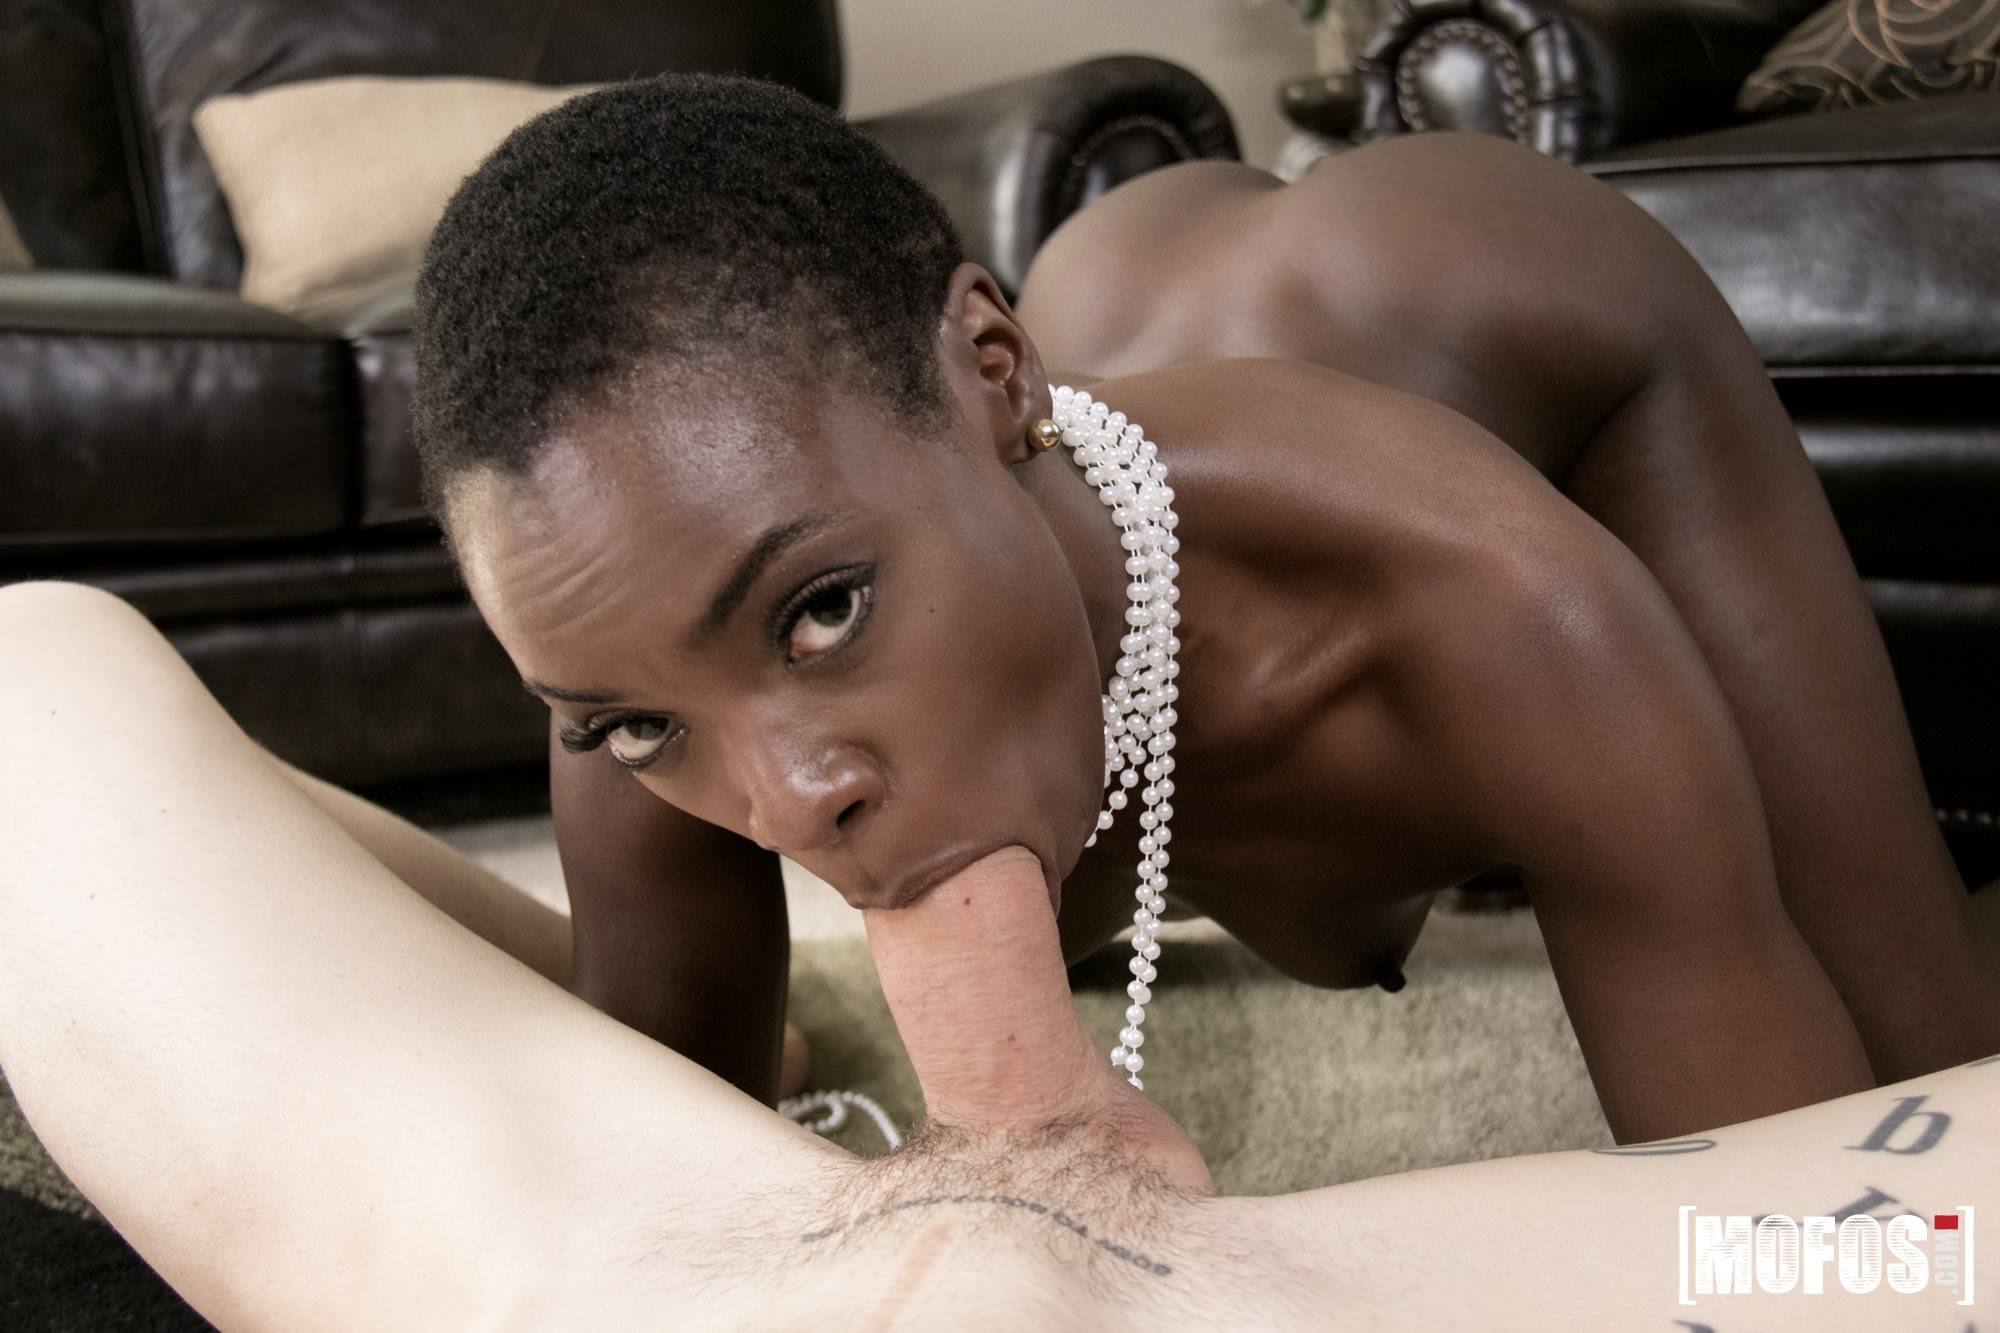 Blowjob with pearl necklace